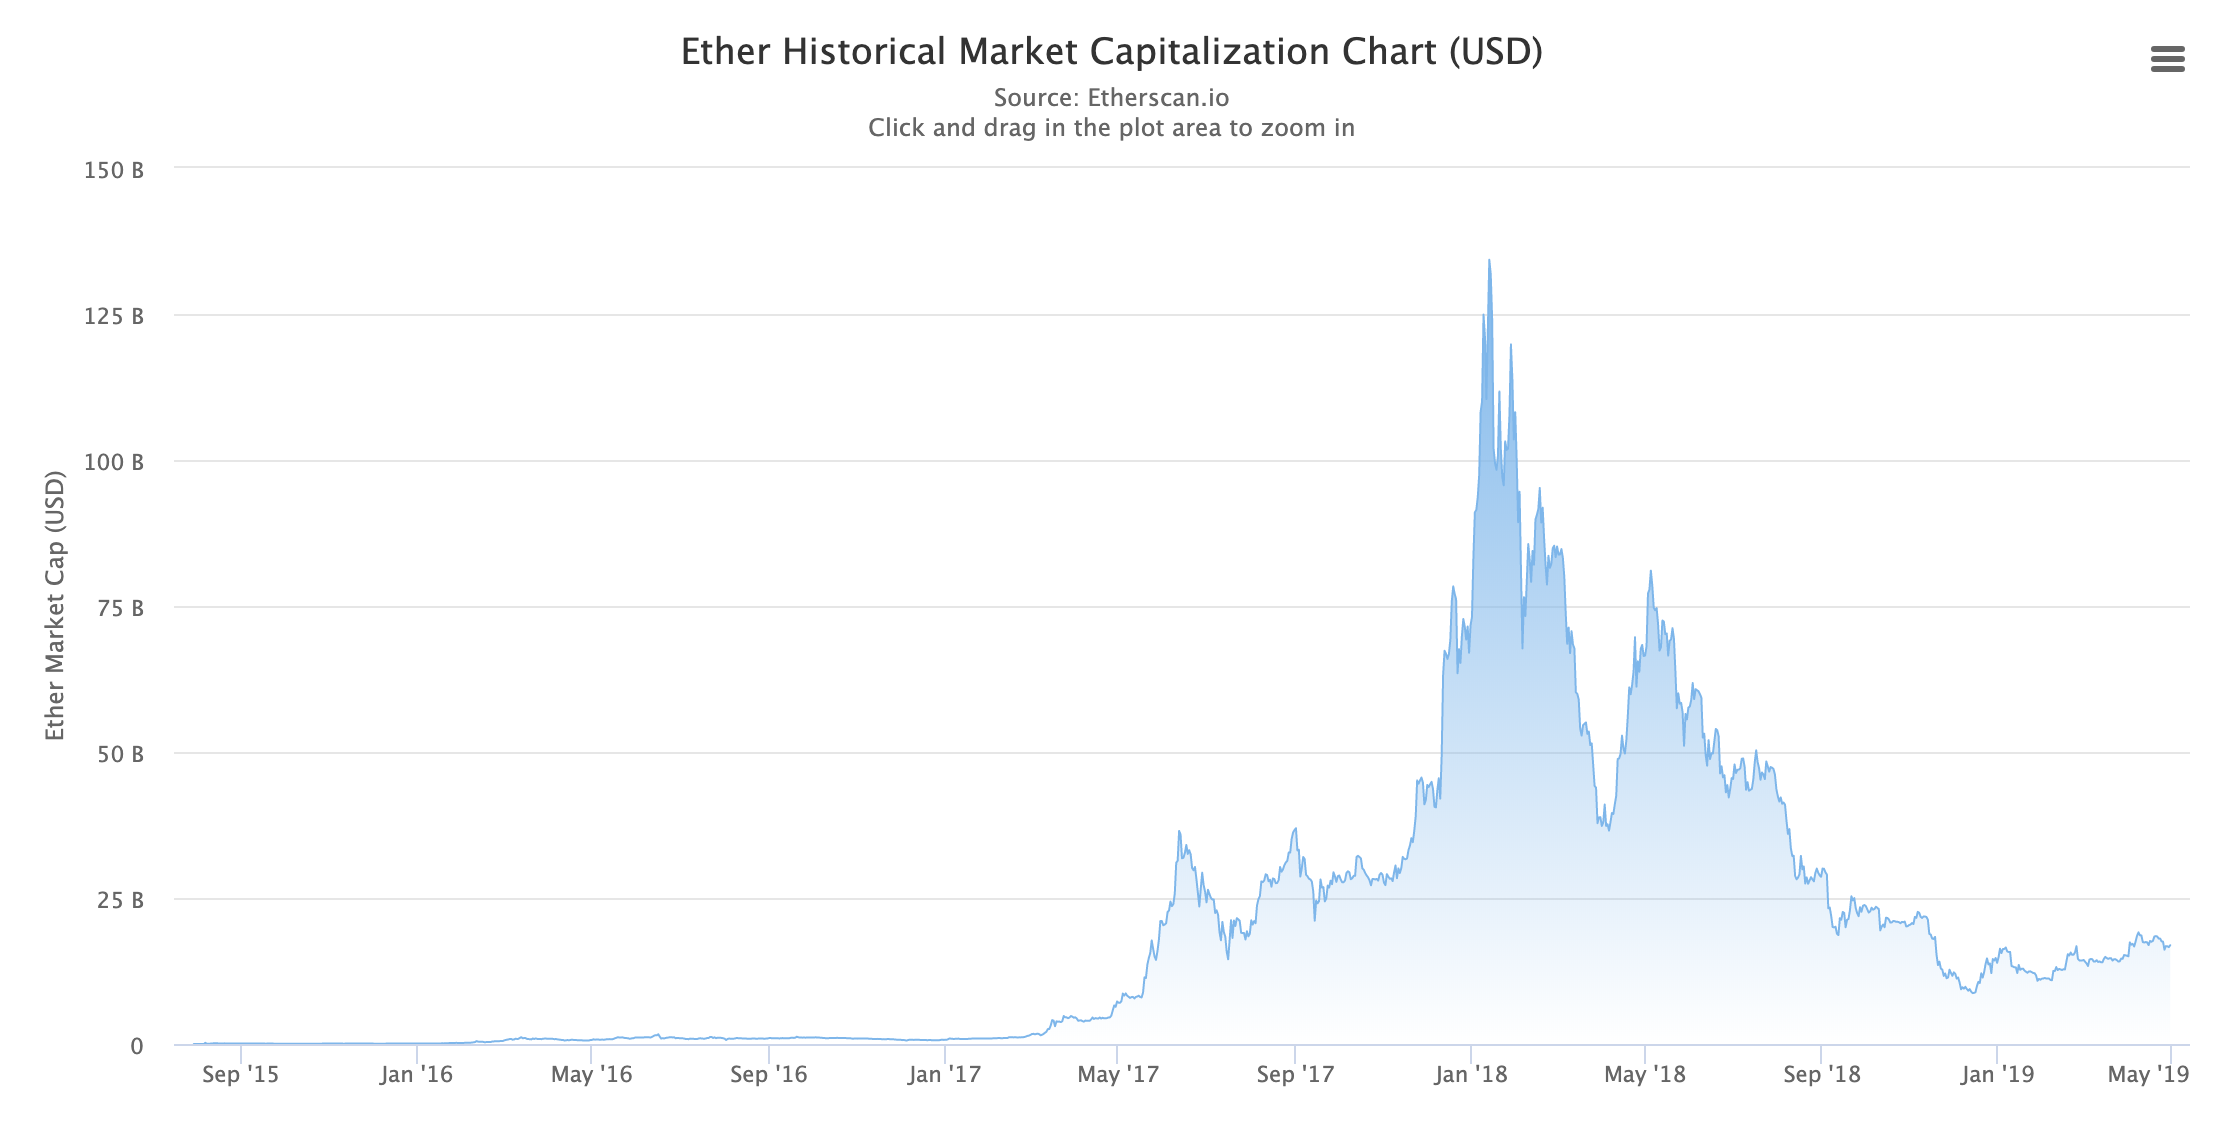 Ether Market Capitalization